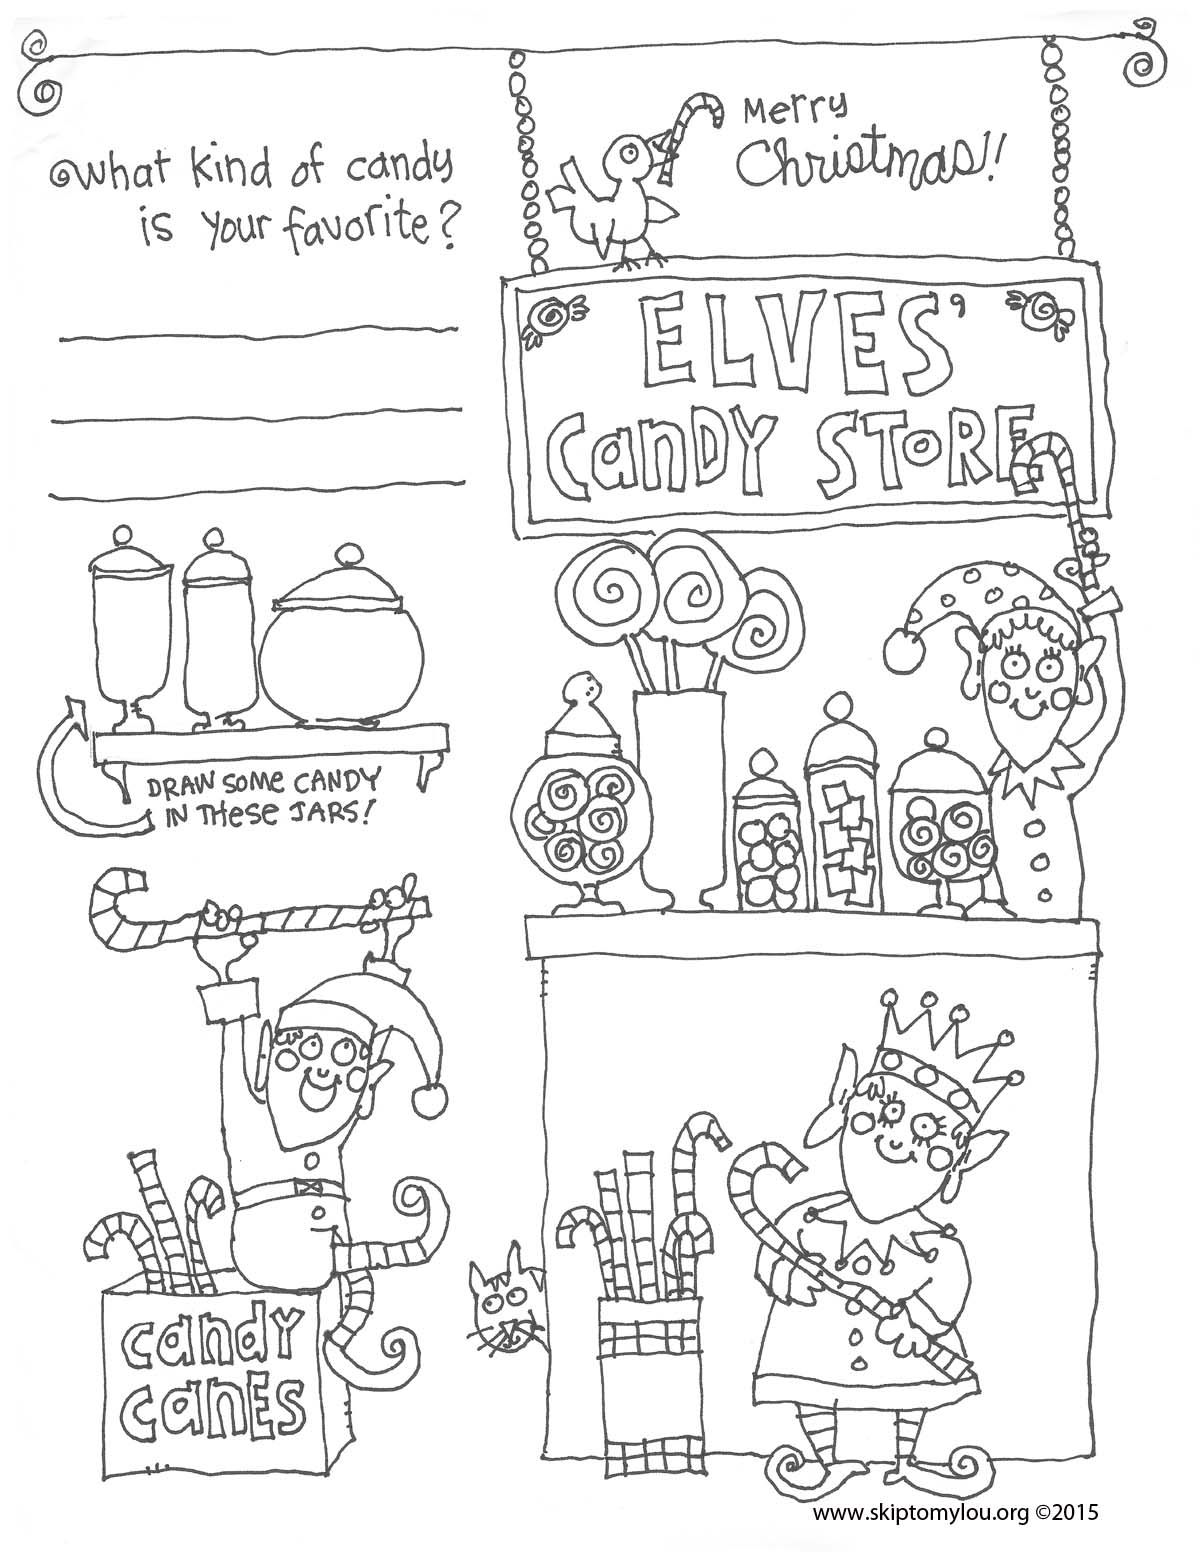 A Cute Christmas Coloring Sheet Is Sure To Keep Kids Entertained At Your Holiday Gatherings Or Durin Kindergarten Writing Kindergarten Fun Beginning Of School